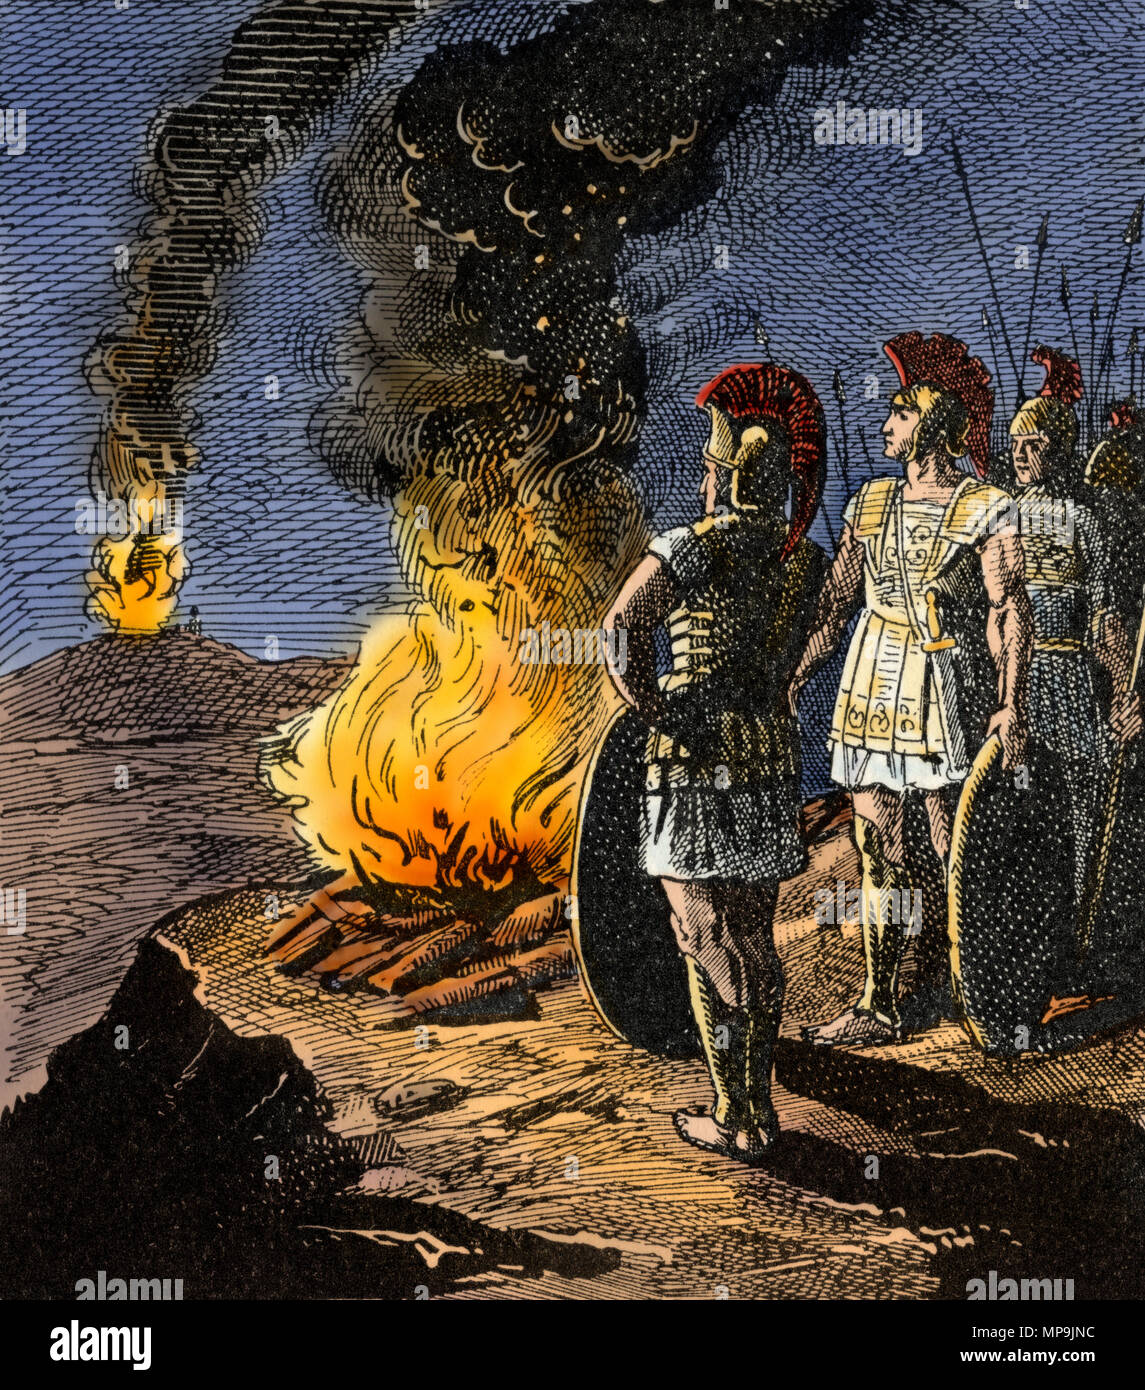 Ancient Greek military communicating via beacon fires. Digitally colored woodcut - Stock Image